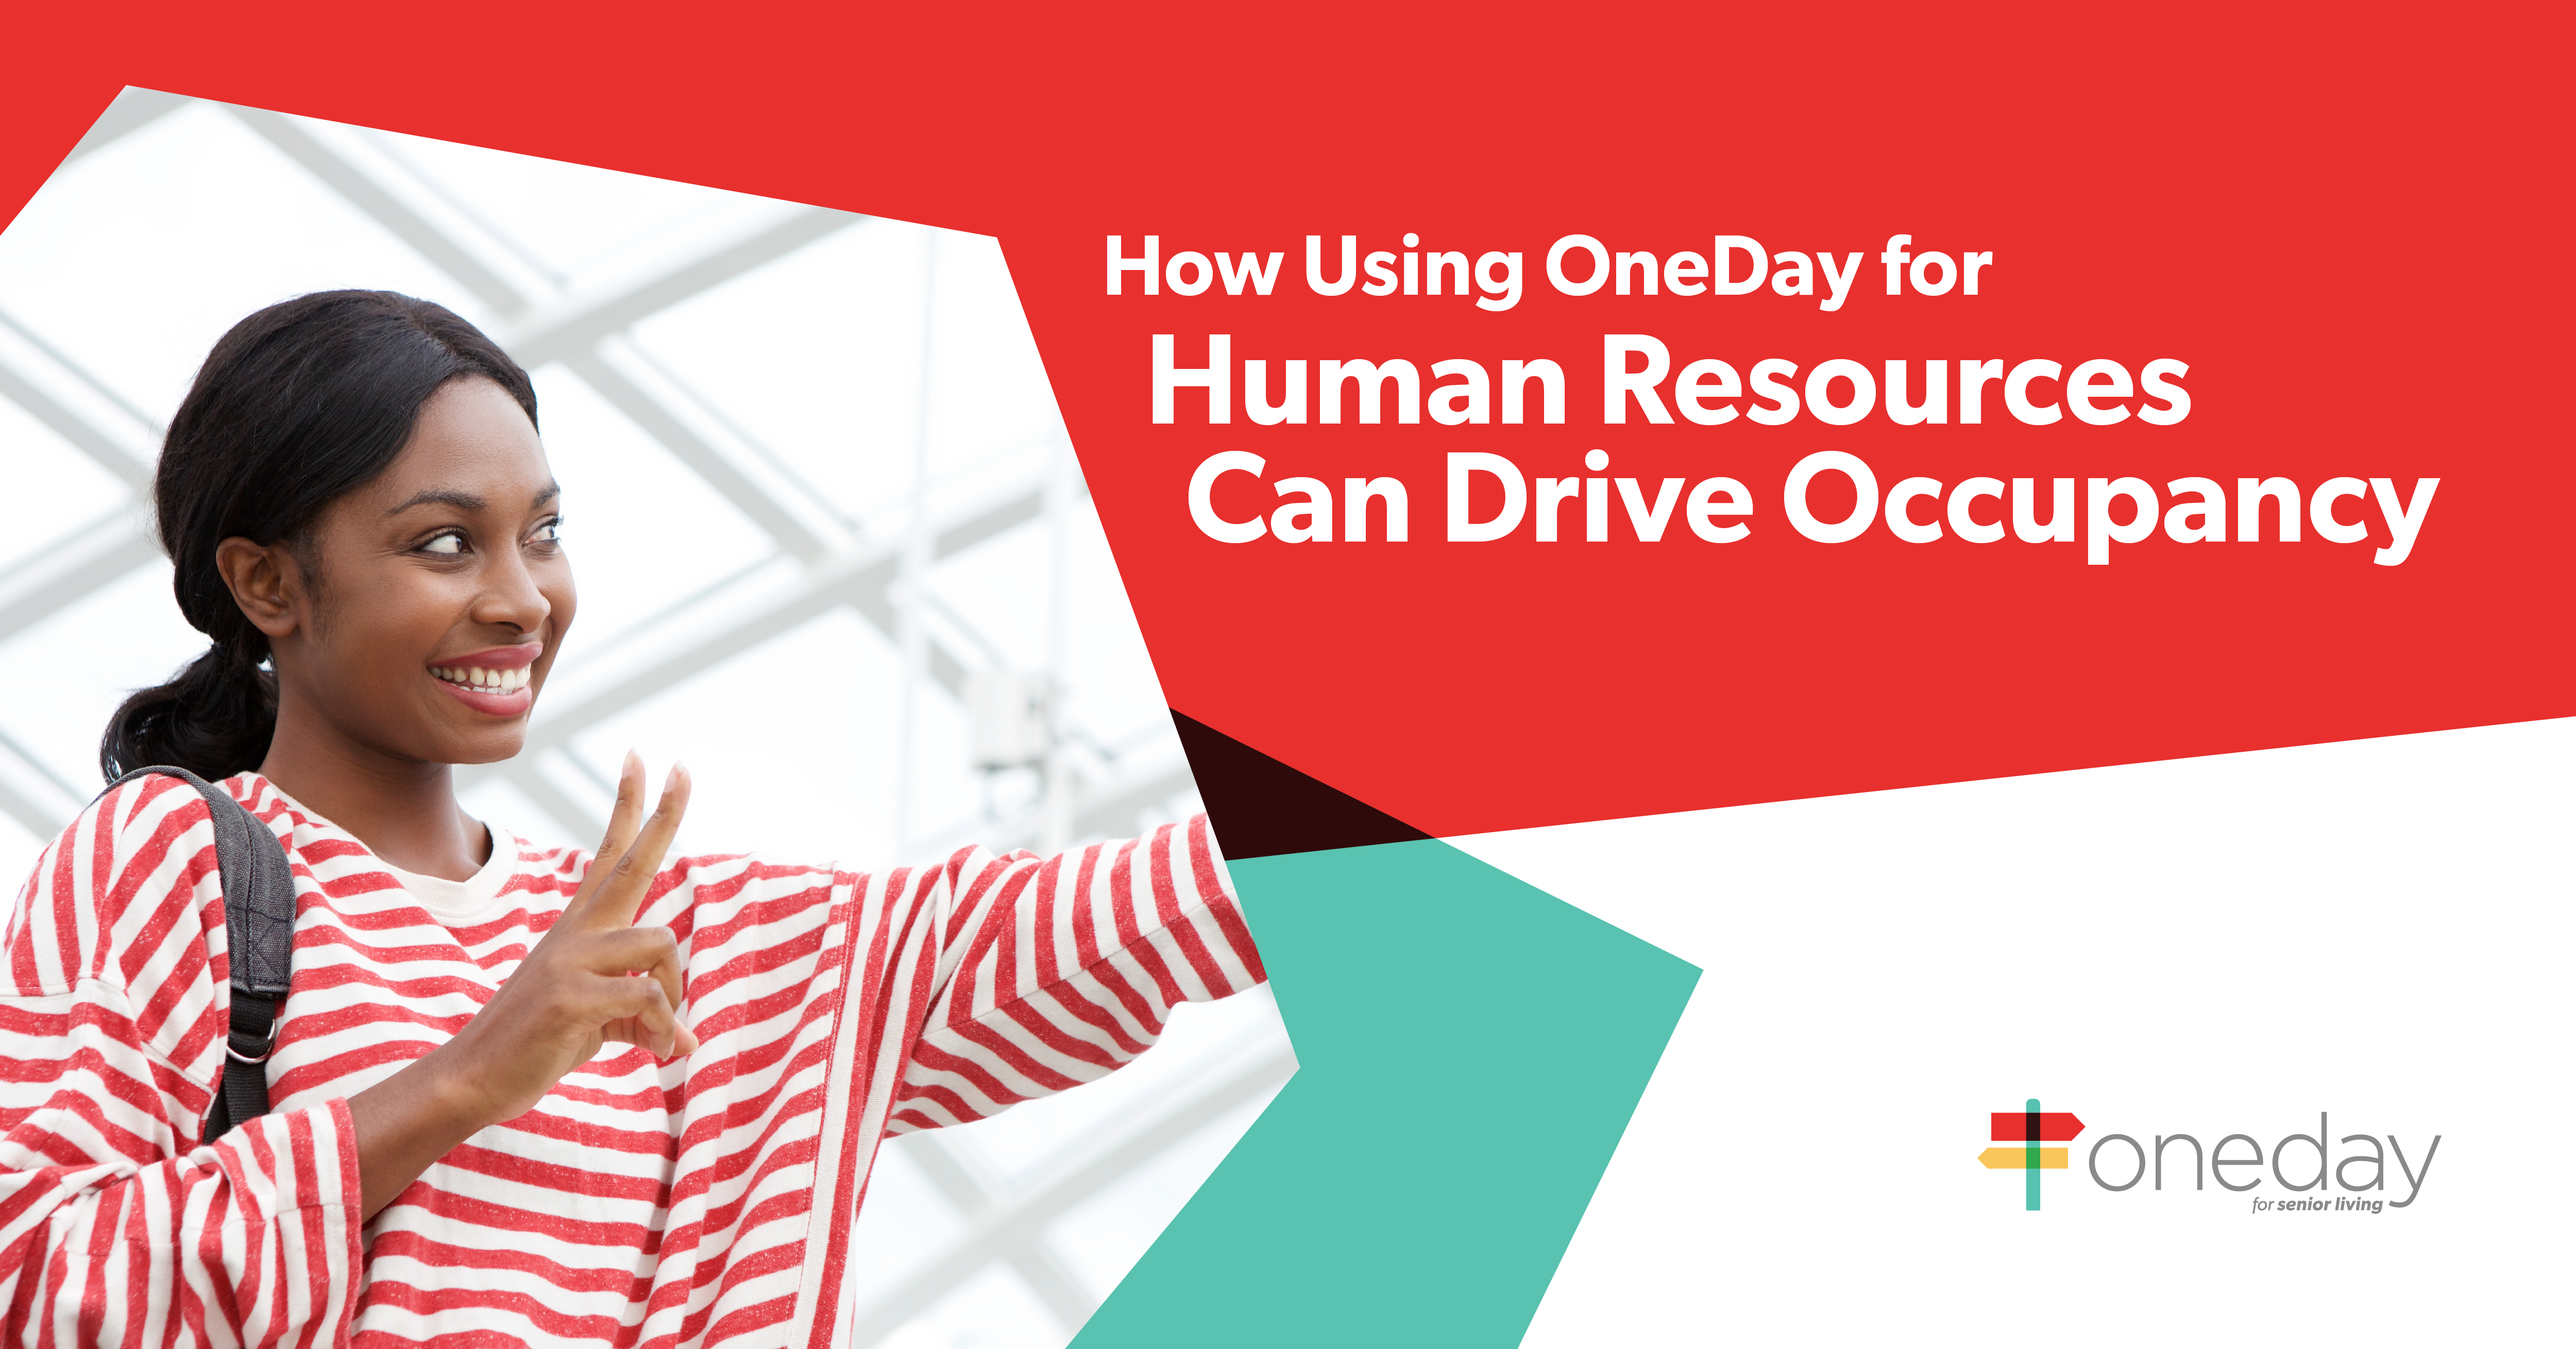 A look at the different ways senior living communities can use OneDay videos in Human Resources that will ultimately help drive occupancy.